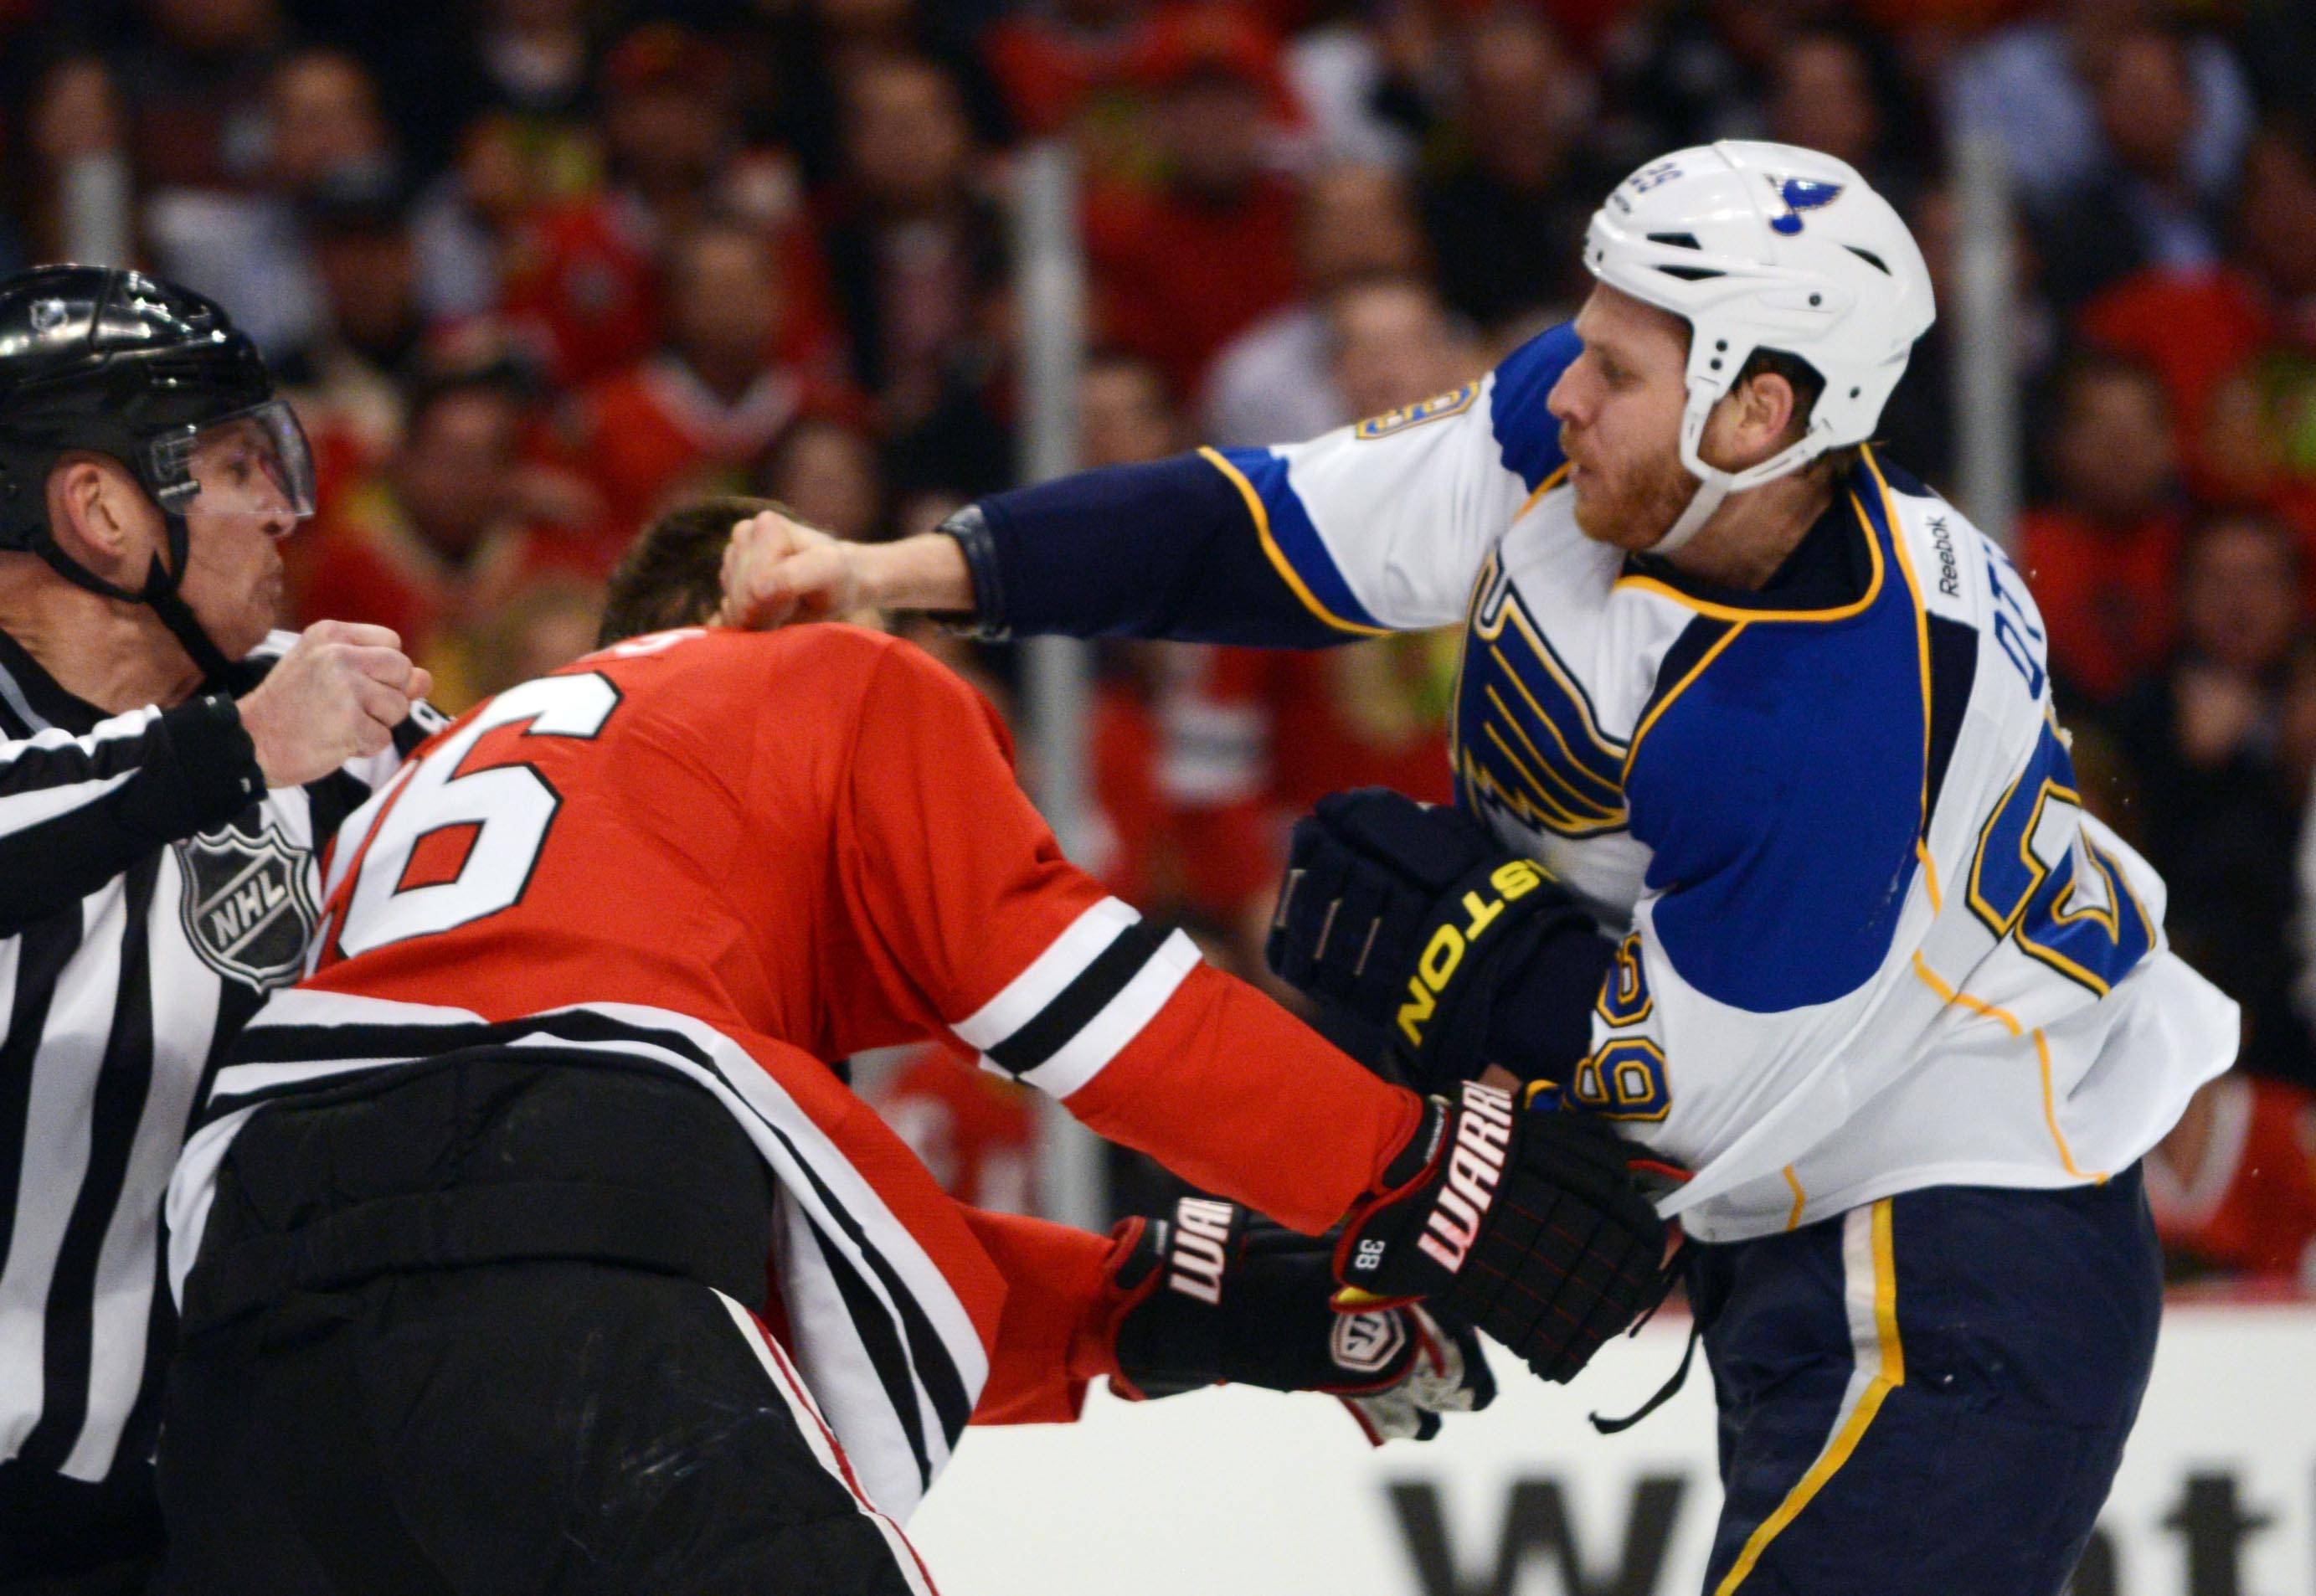 Chicago Blackhawks center Michal Handzus and St. Louis Blues center Steve Ott fight .